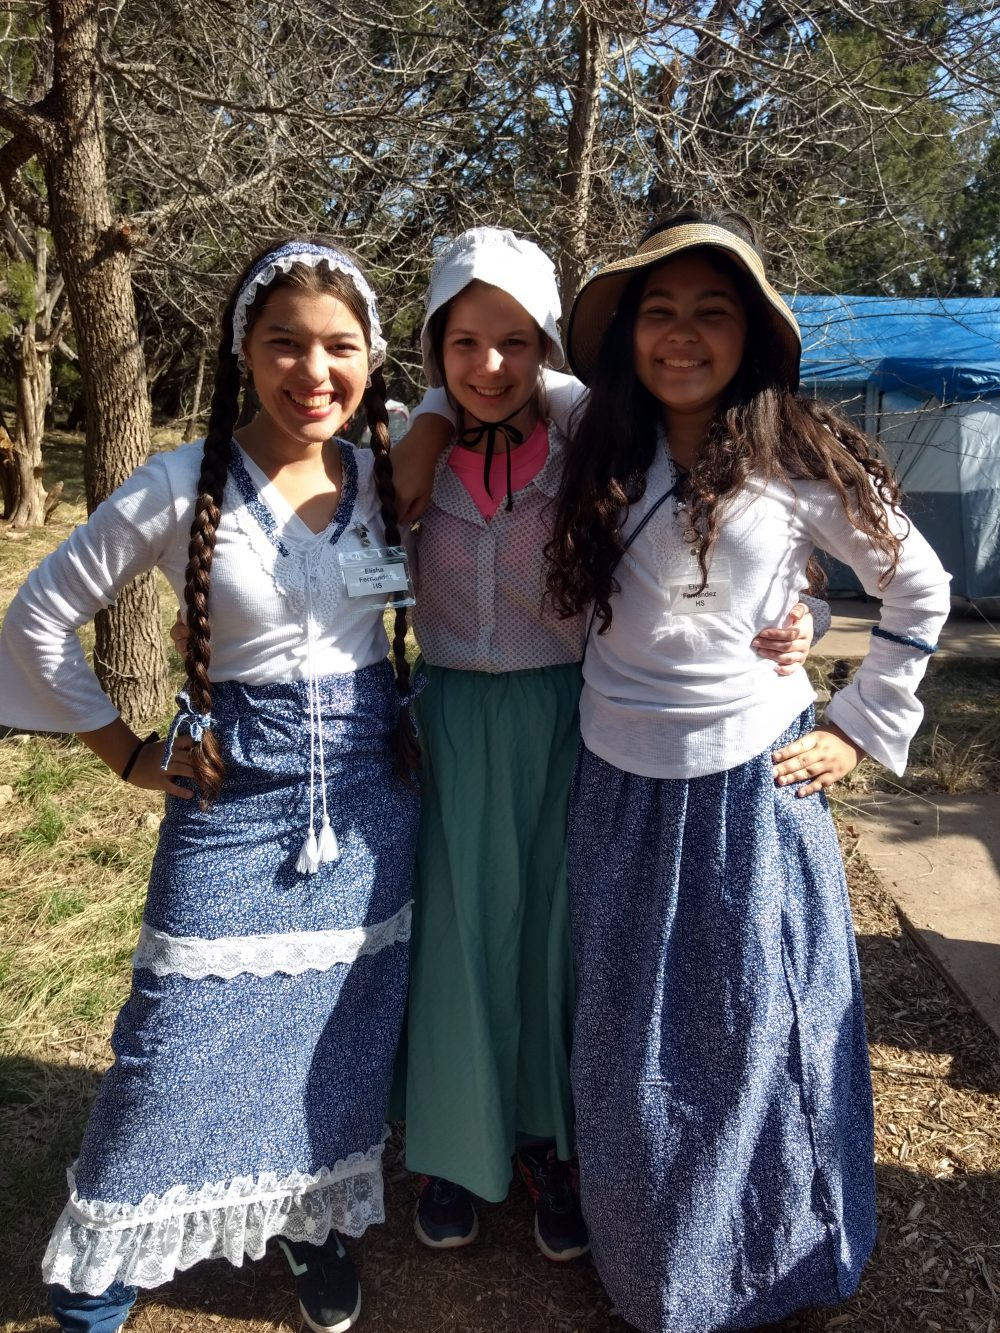 The Great Outdoors - pioneer skit